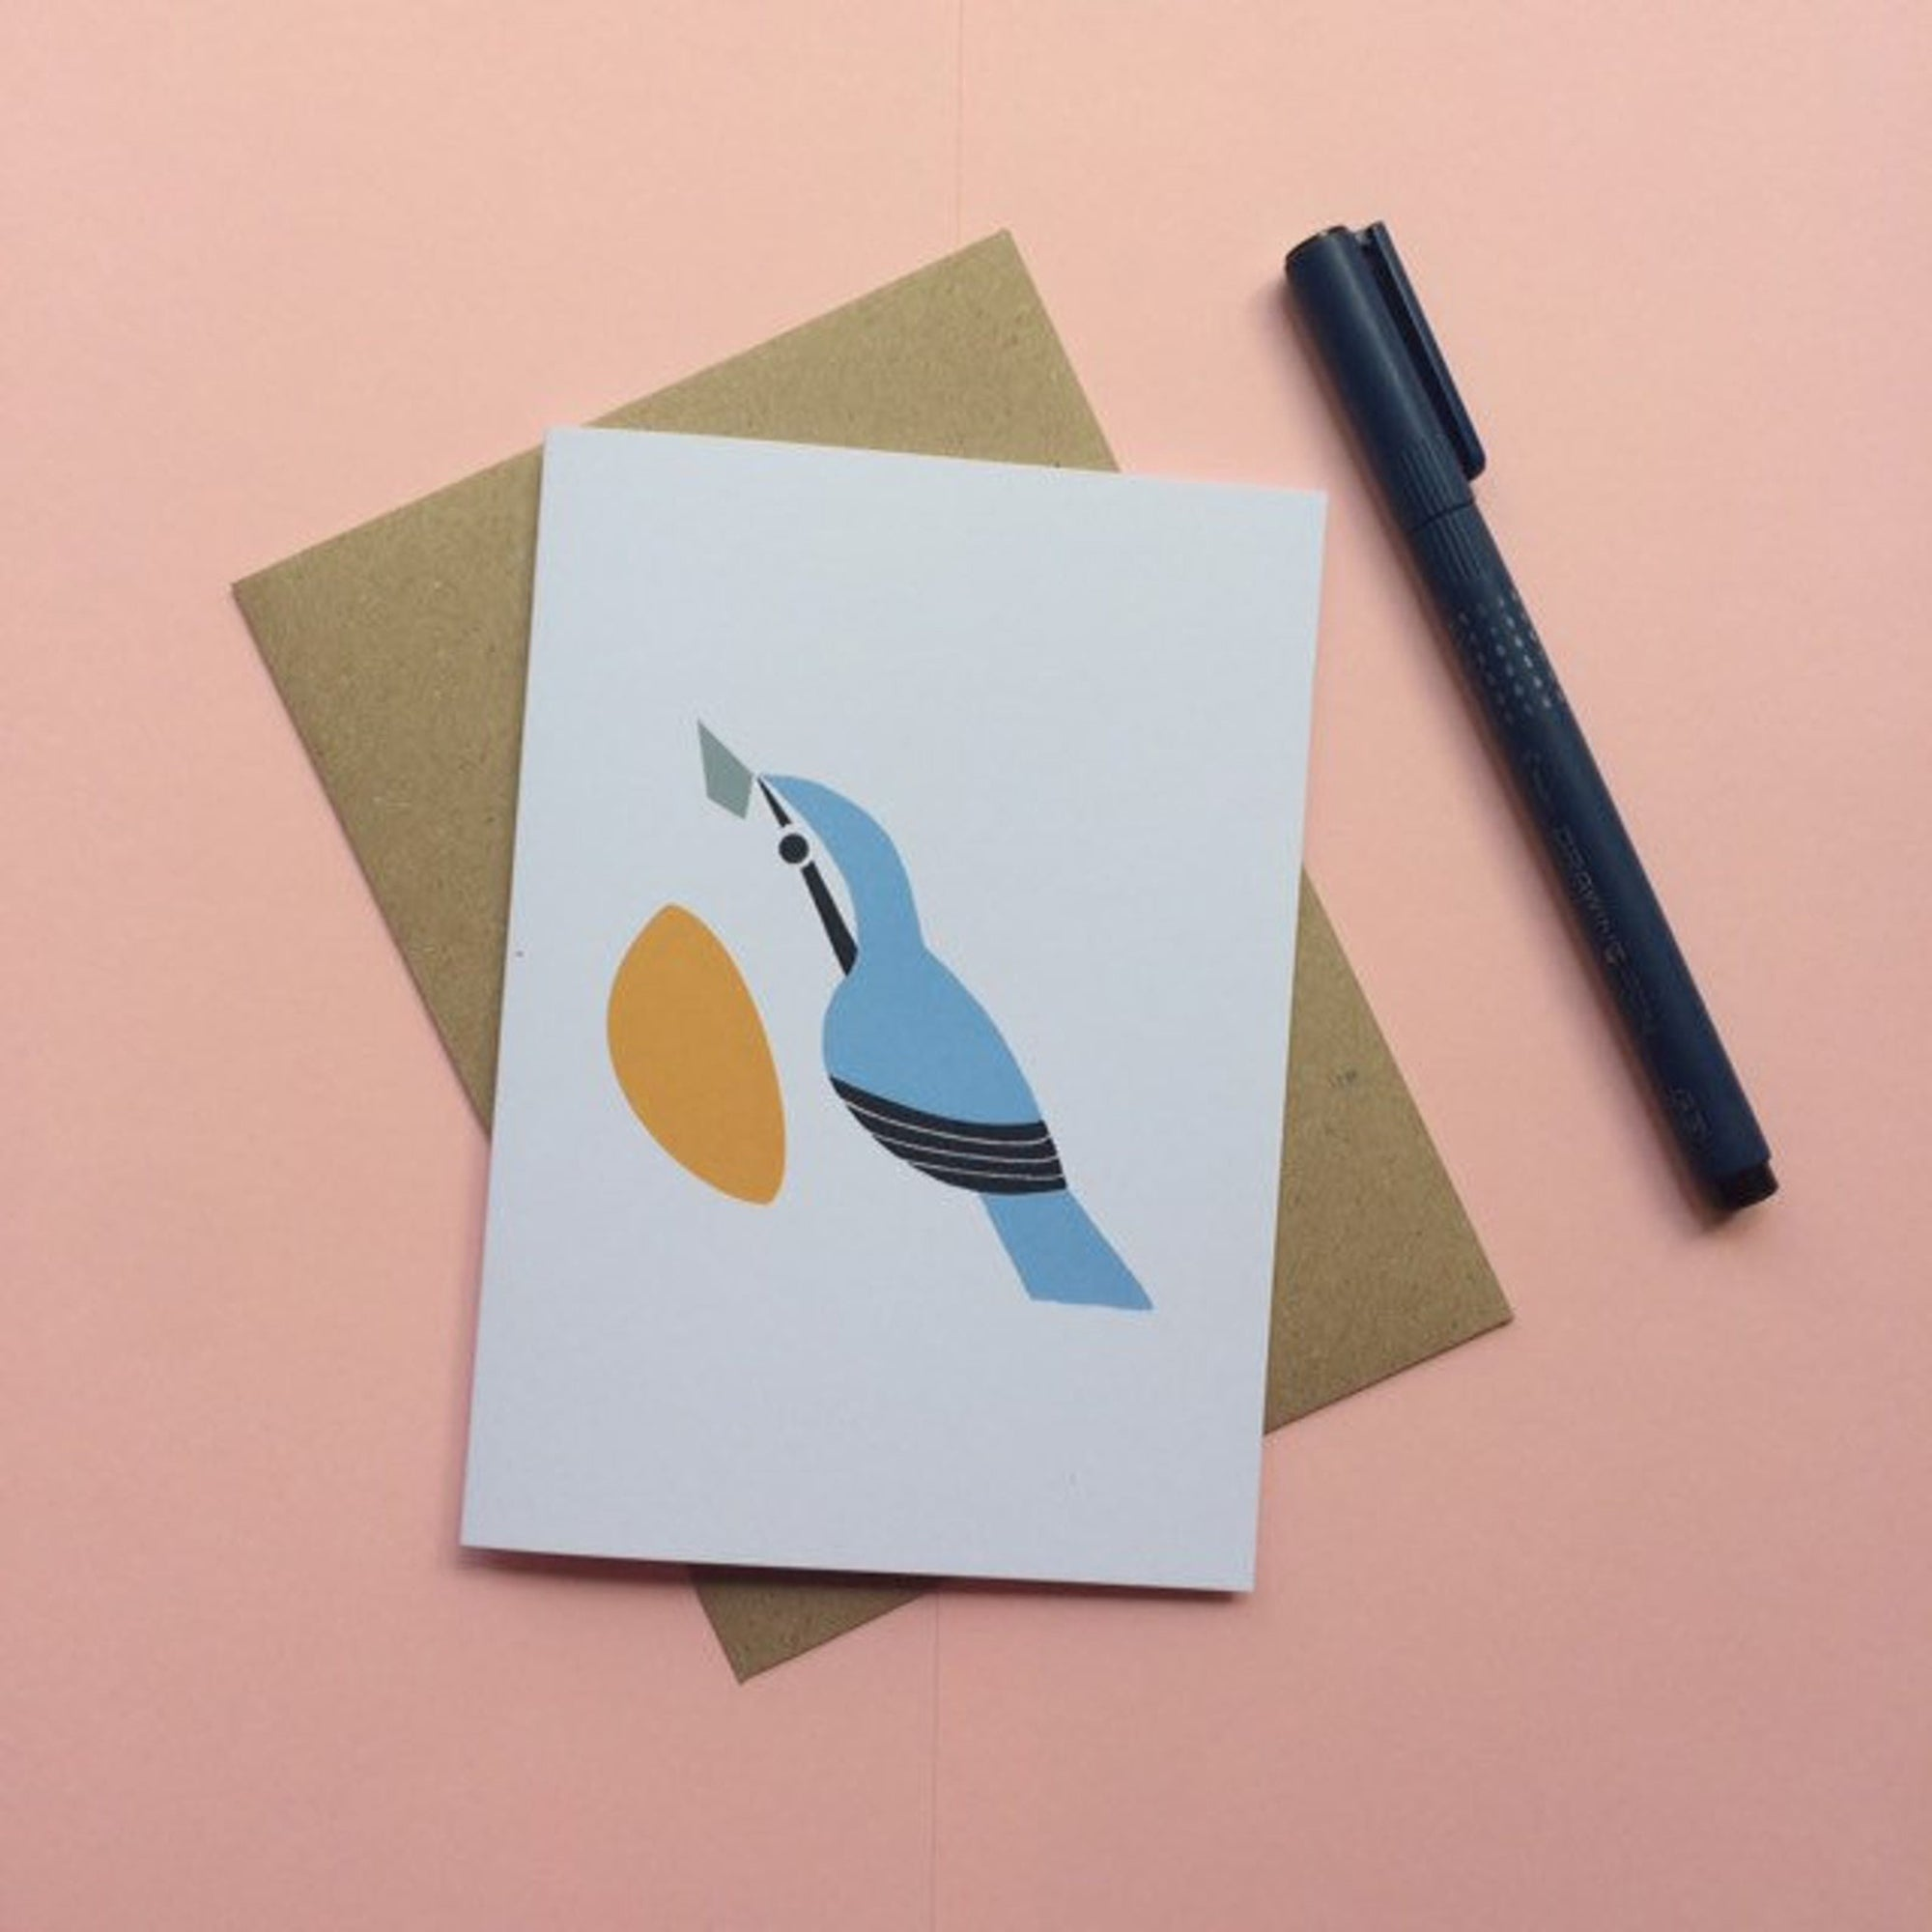 Nuthatch greetings card - Inspired